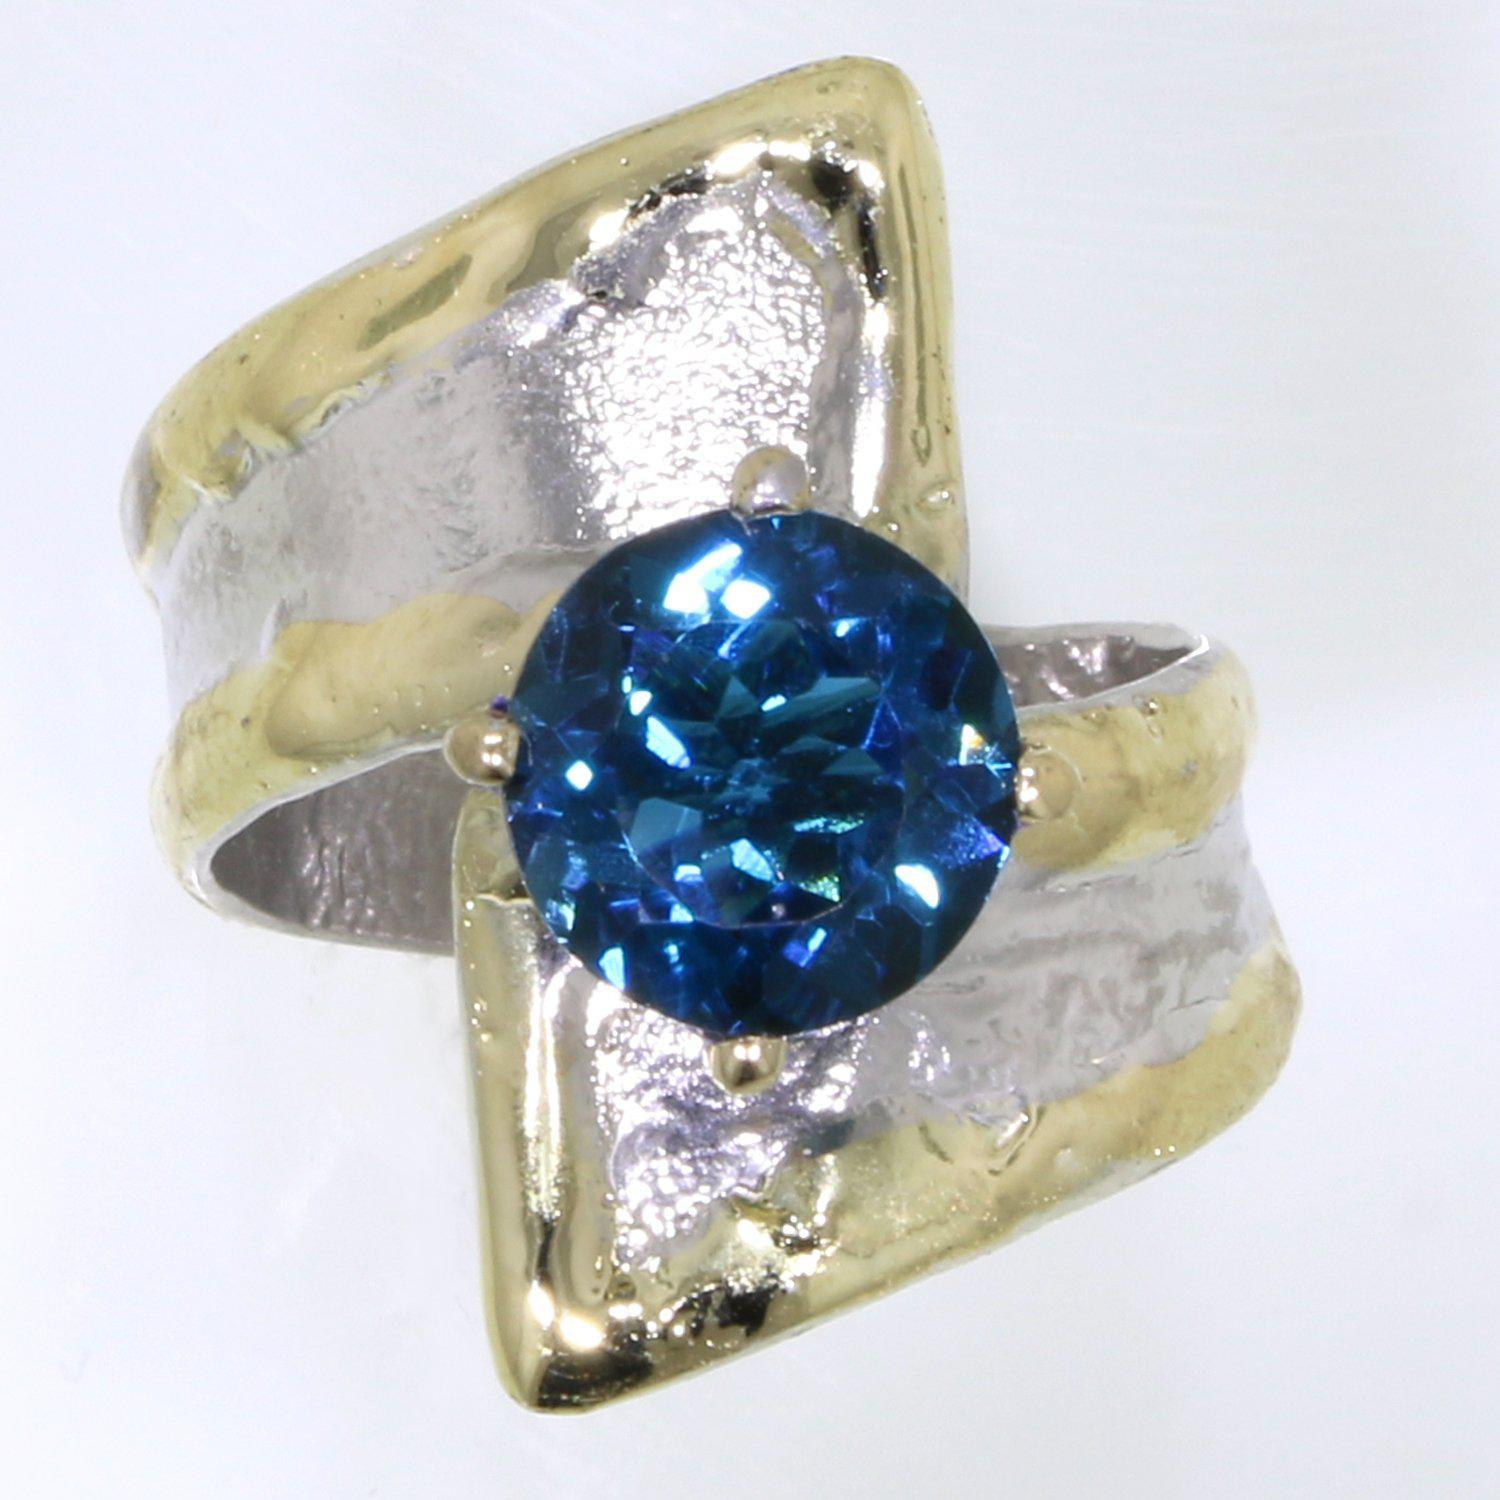 14K Gold & Crystalline Silver London Blue Topaz Ring - 31925-Fusion Designs-Renee Taylor Gallery